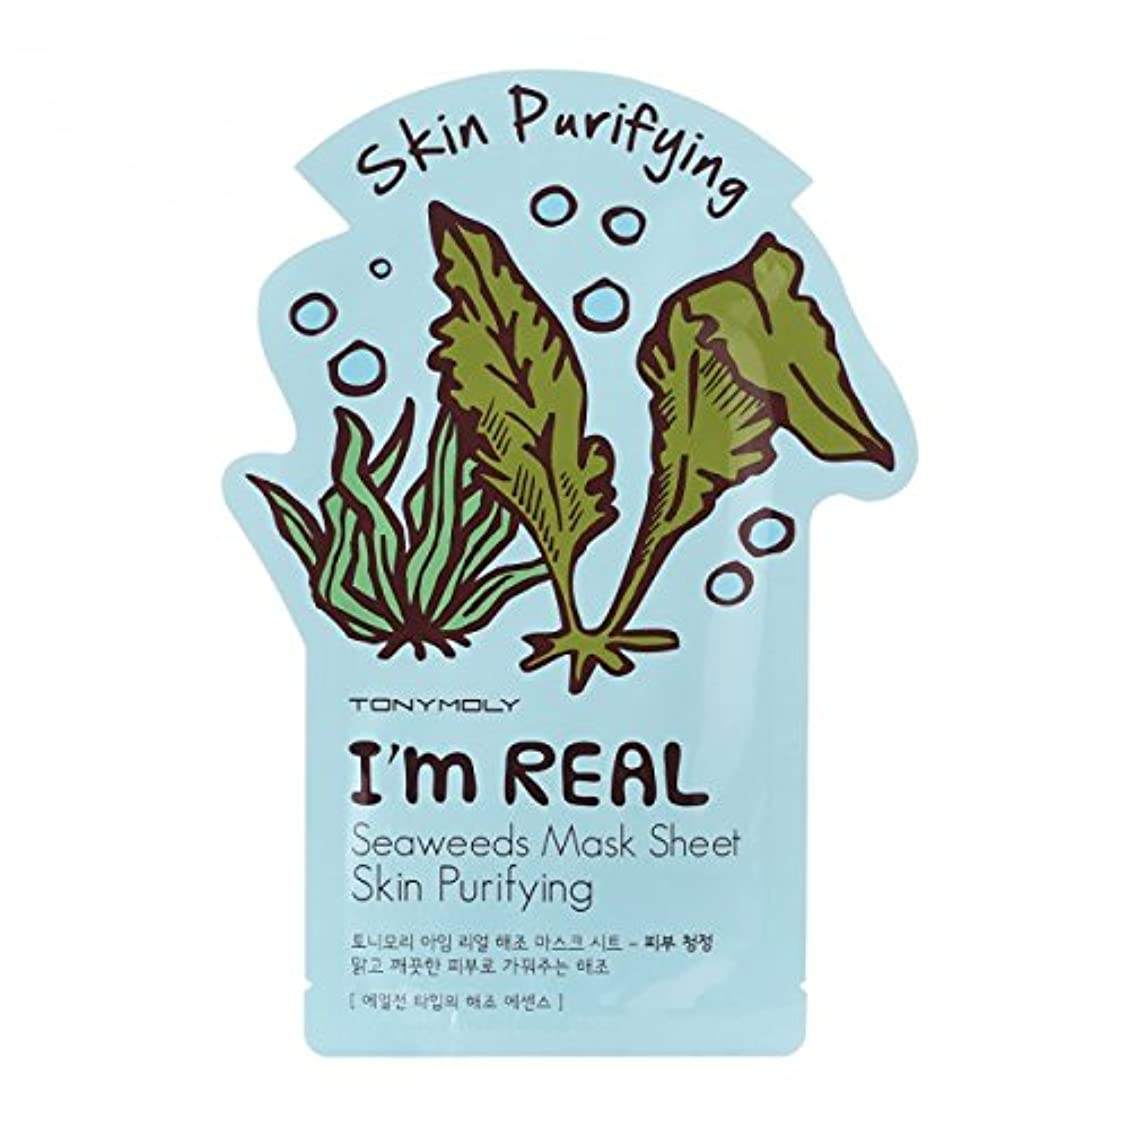 払い戻し二度木曜日TONYMOLY I'm Real Seaweeds Mask Sheet Skin Purifying (並行輸入品)